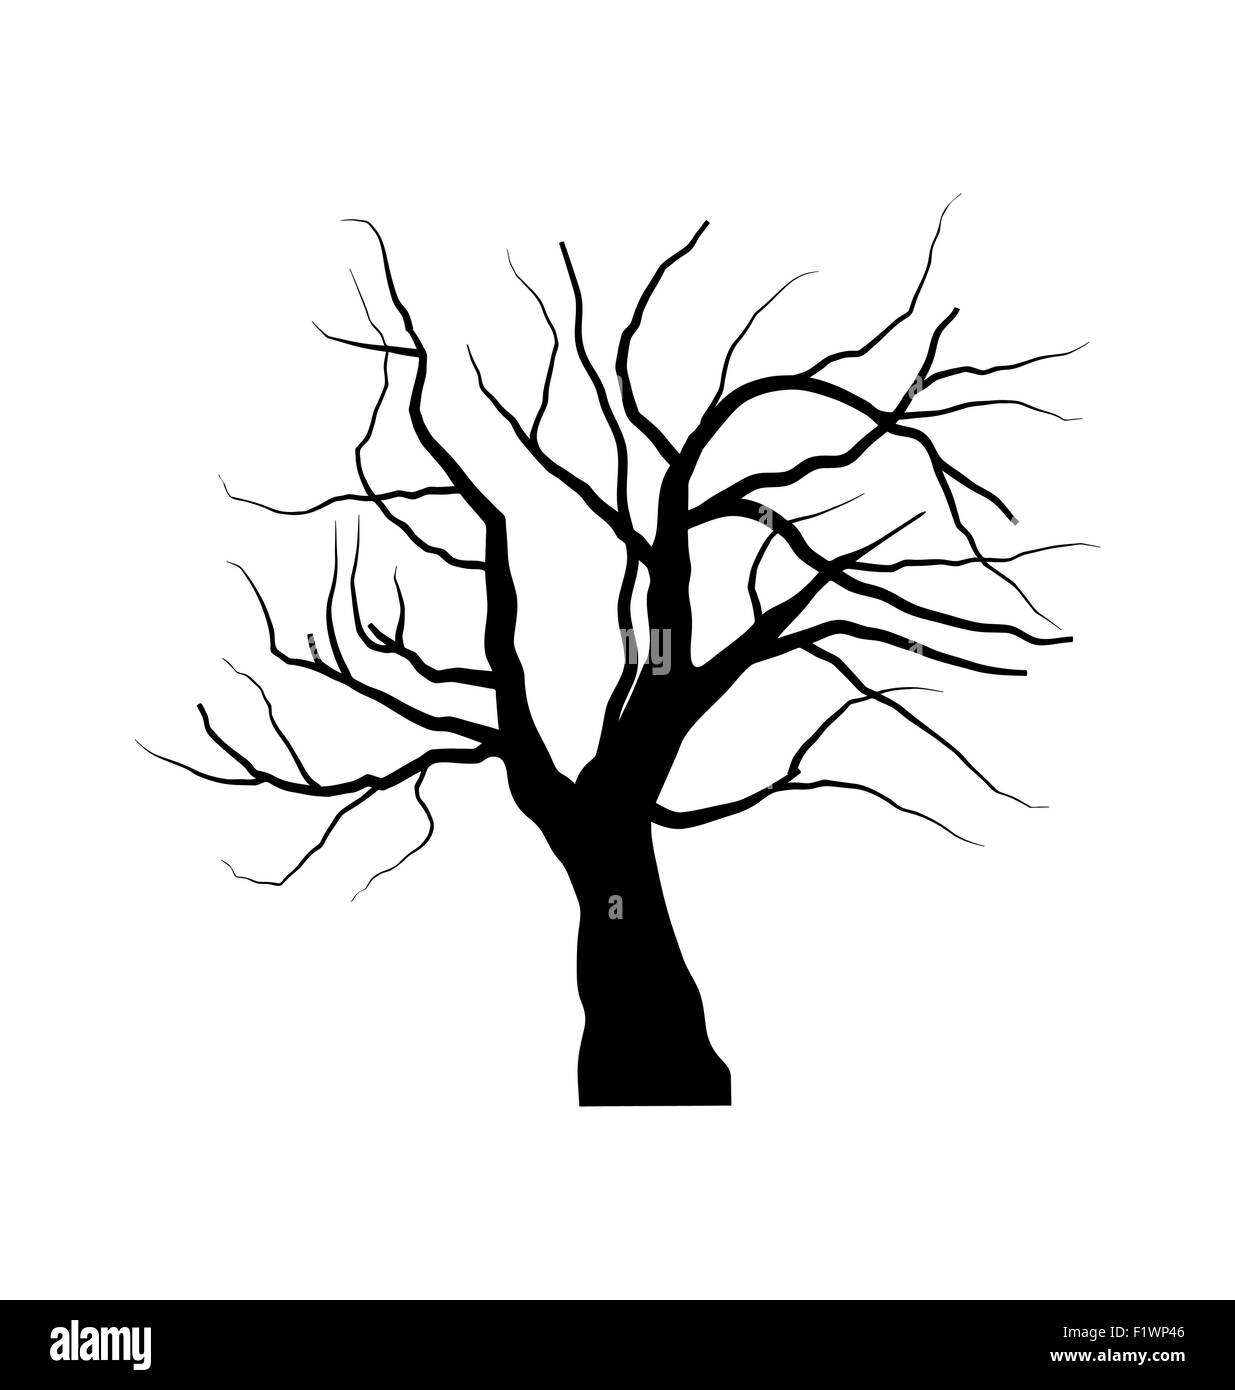 Sketch Of Dead Tree Without Leaves Isolated On White Backgroun Stock Vector Image Art Alamy Cartoon christmas tree with decorations isolated vector. alamy